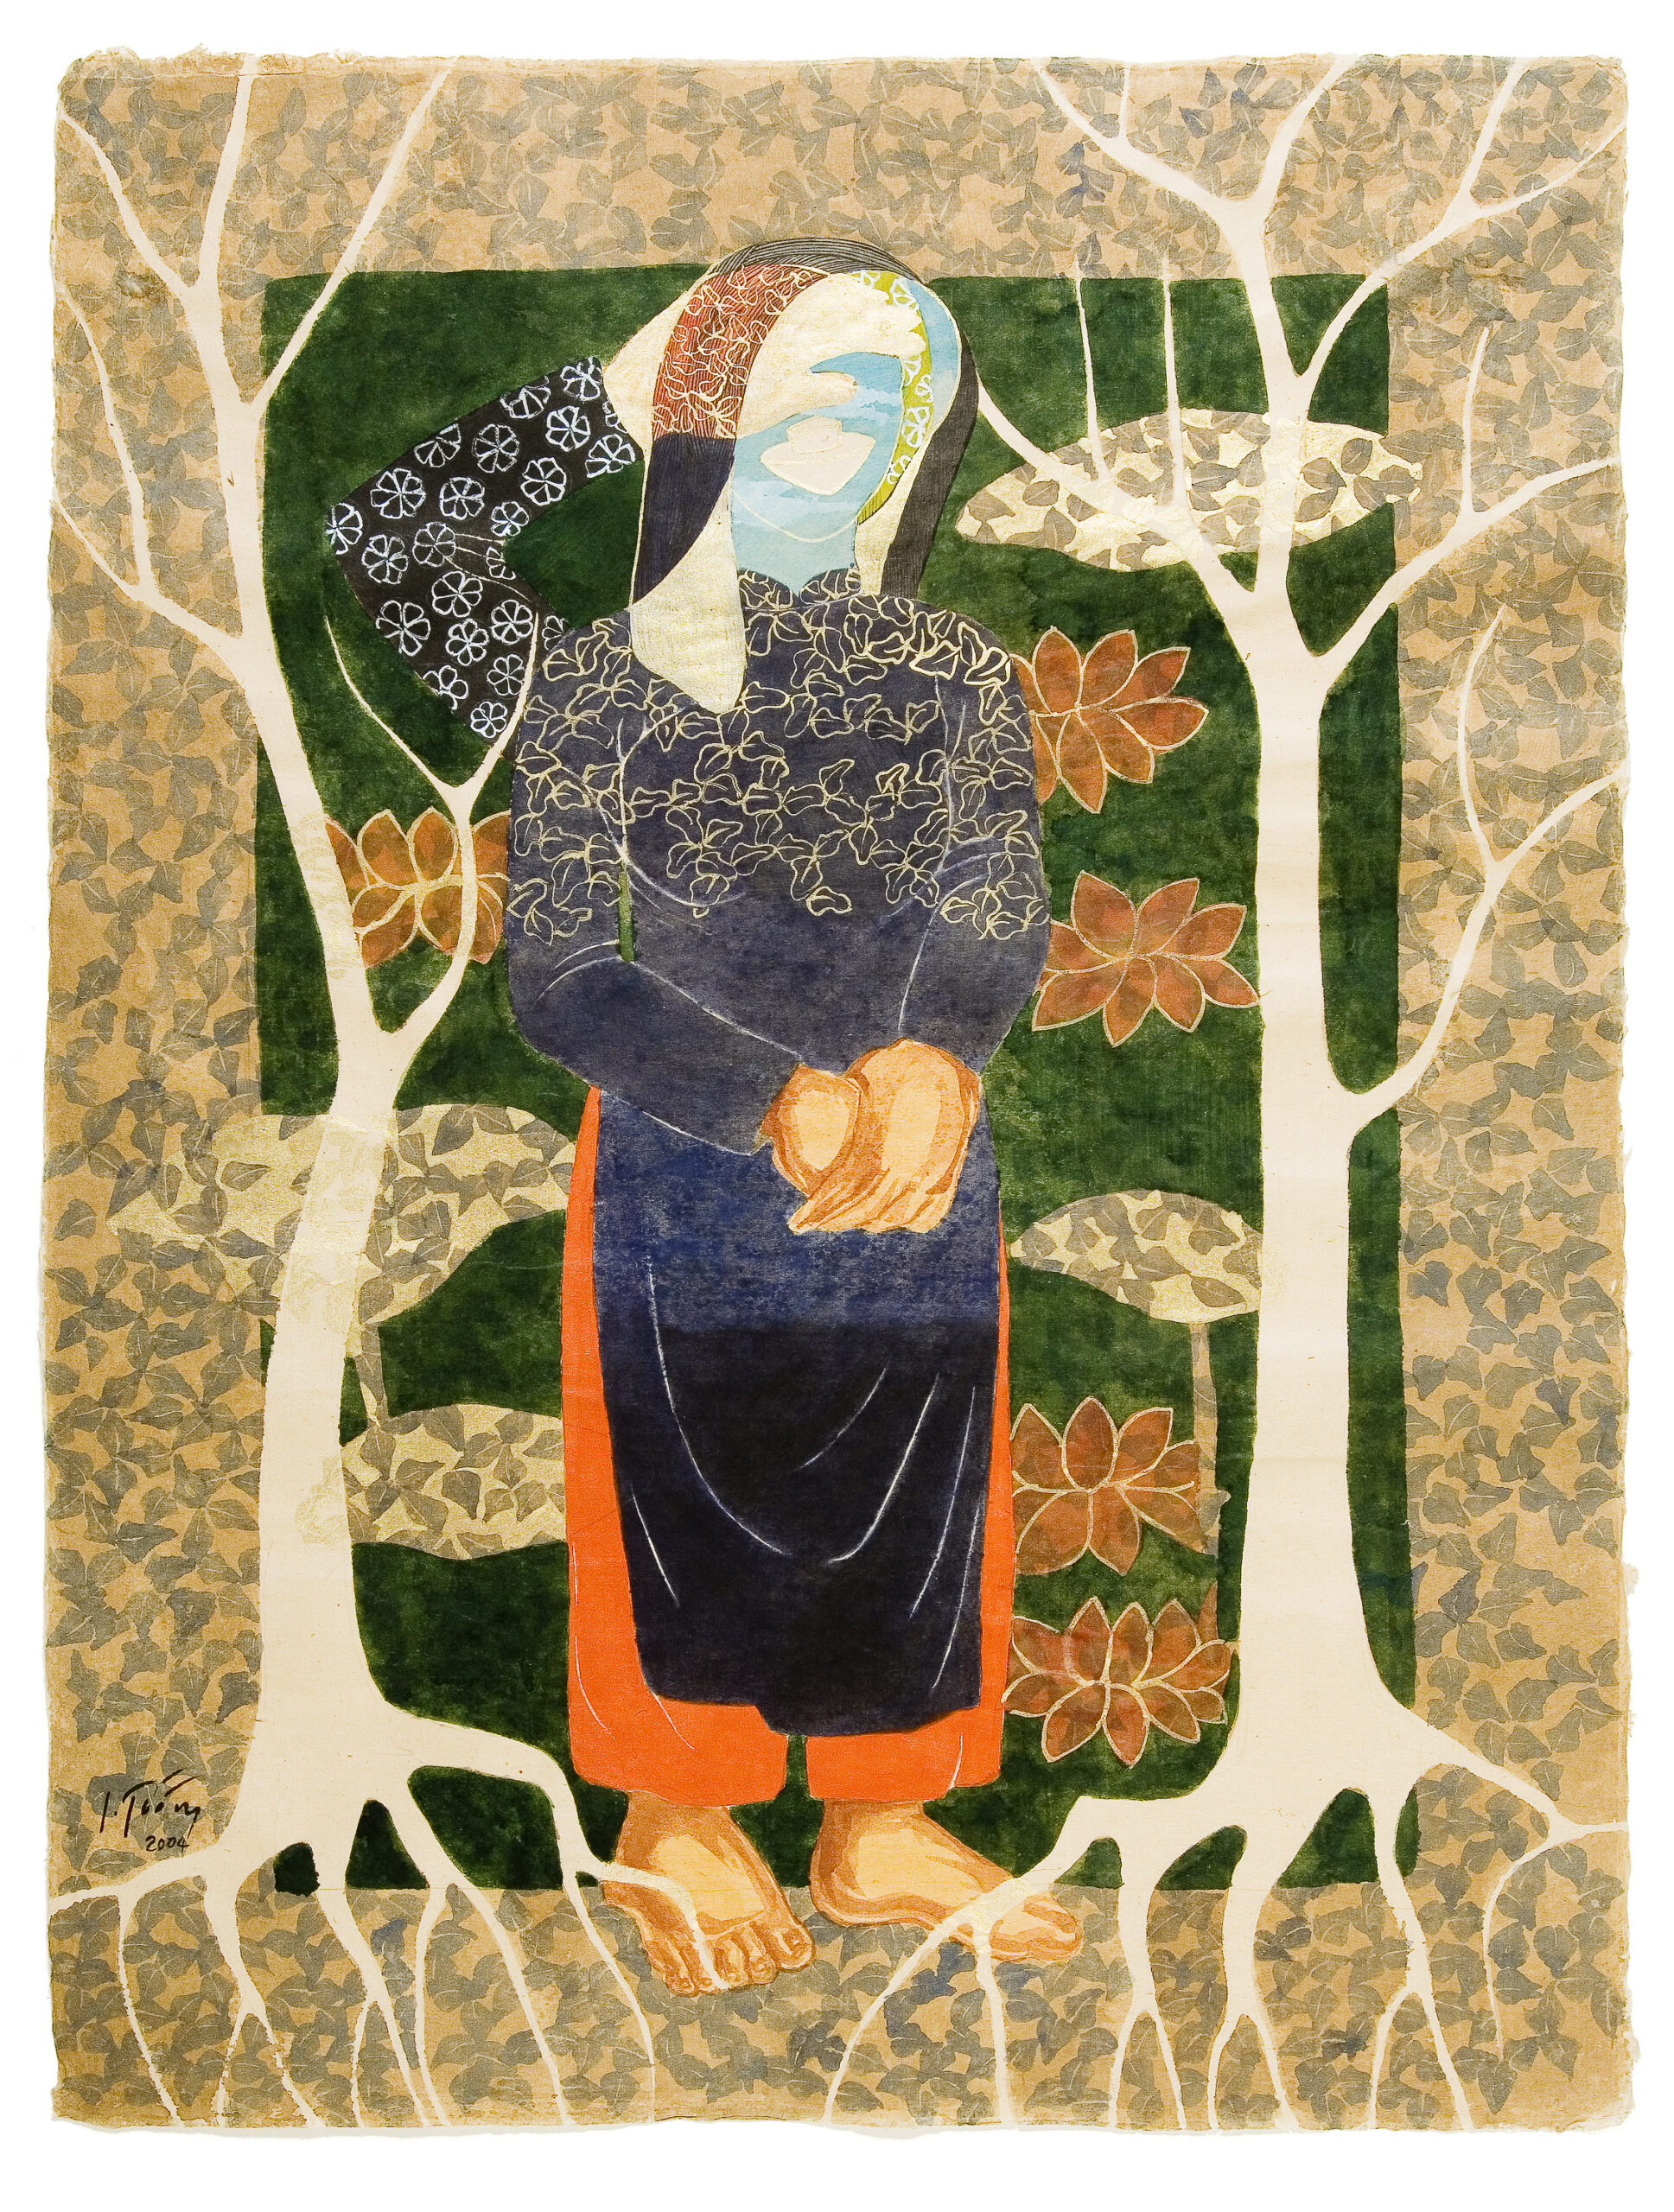 Spinning Tales by Dinh Thi Tham Poong, watercolour on handmade paper, 2004, 80 x 60 cm